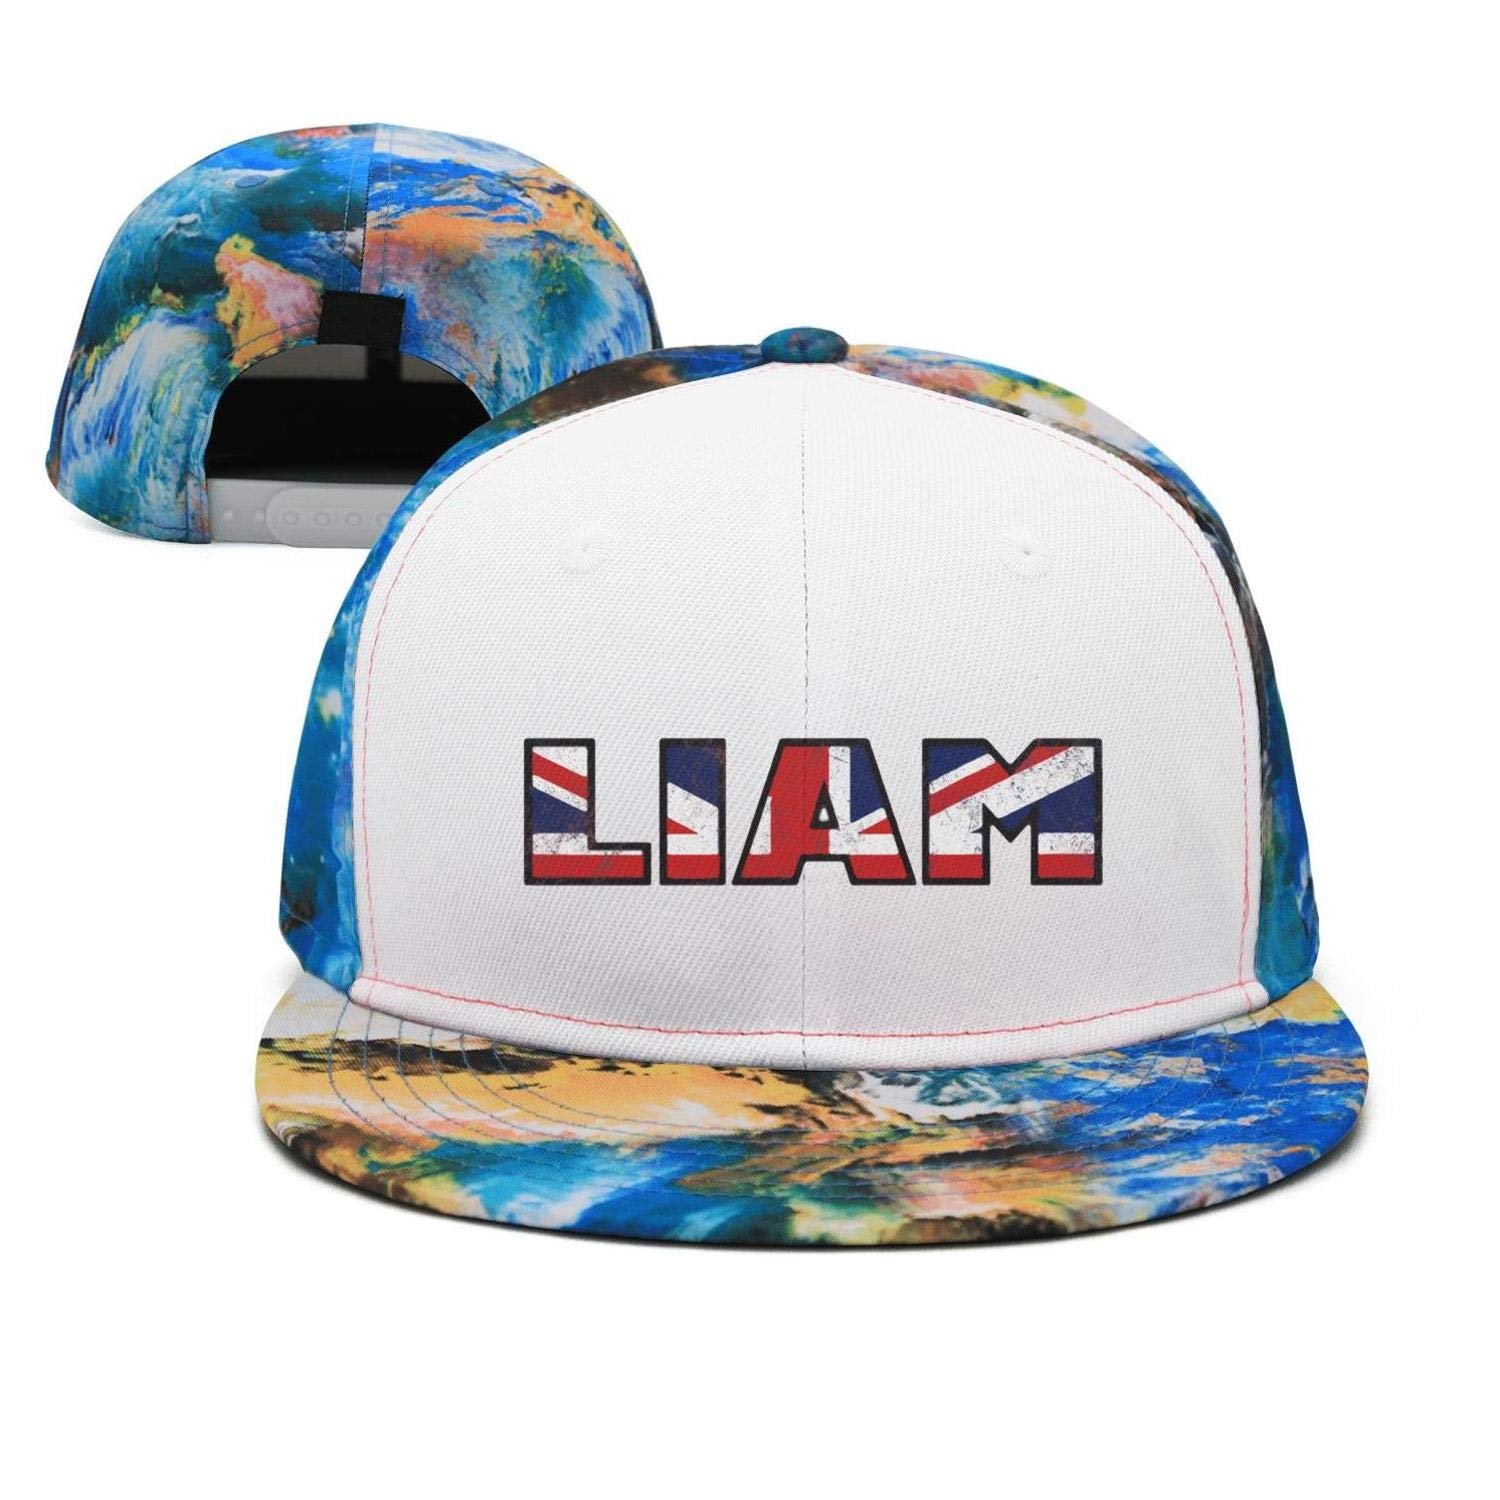 Man Liam-Payne-Great-Singer Snapback hat Trucker Hats Baseball Caps